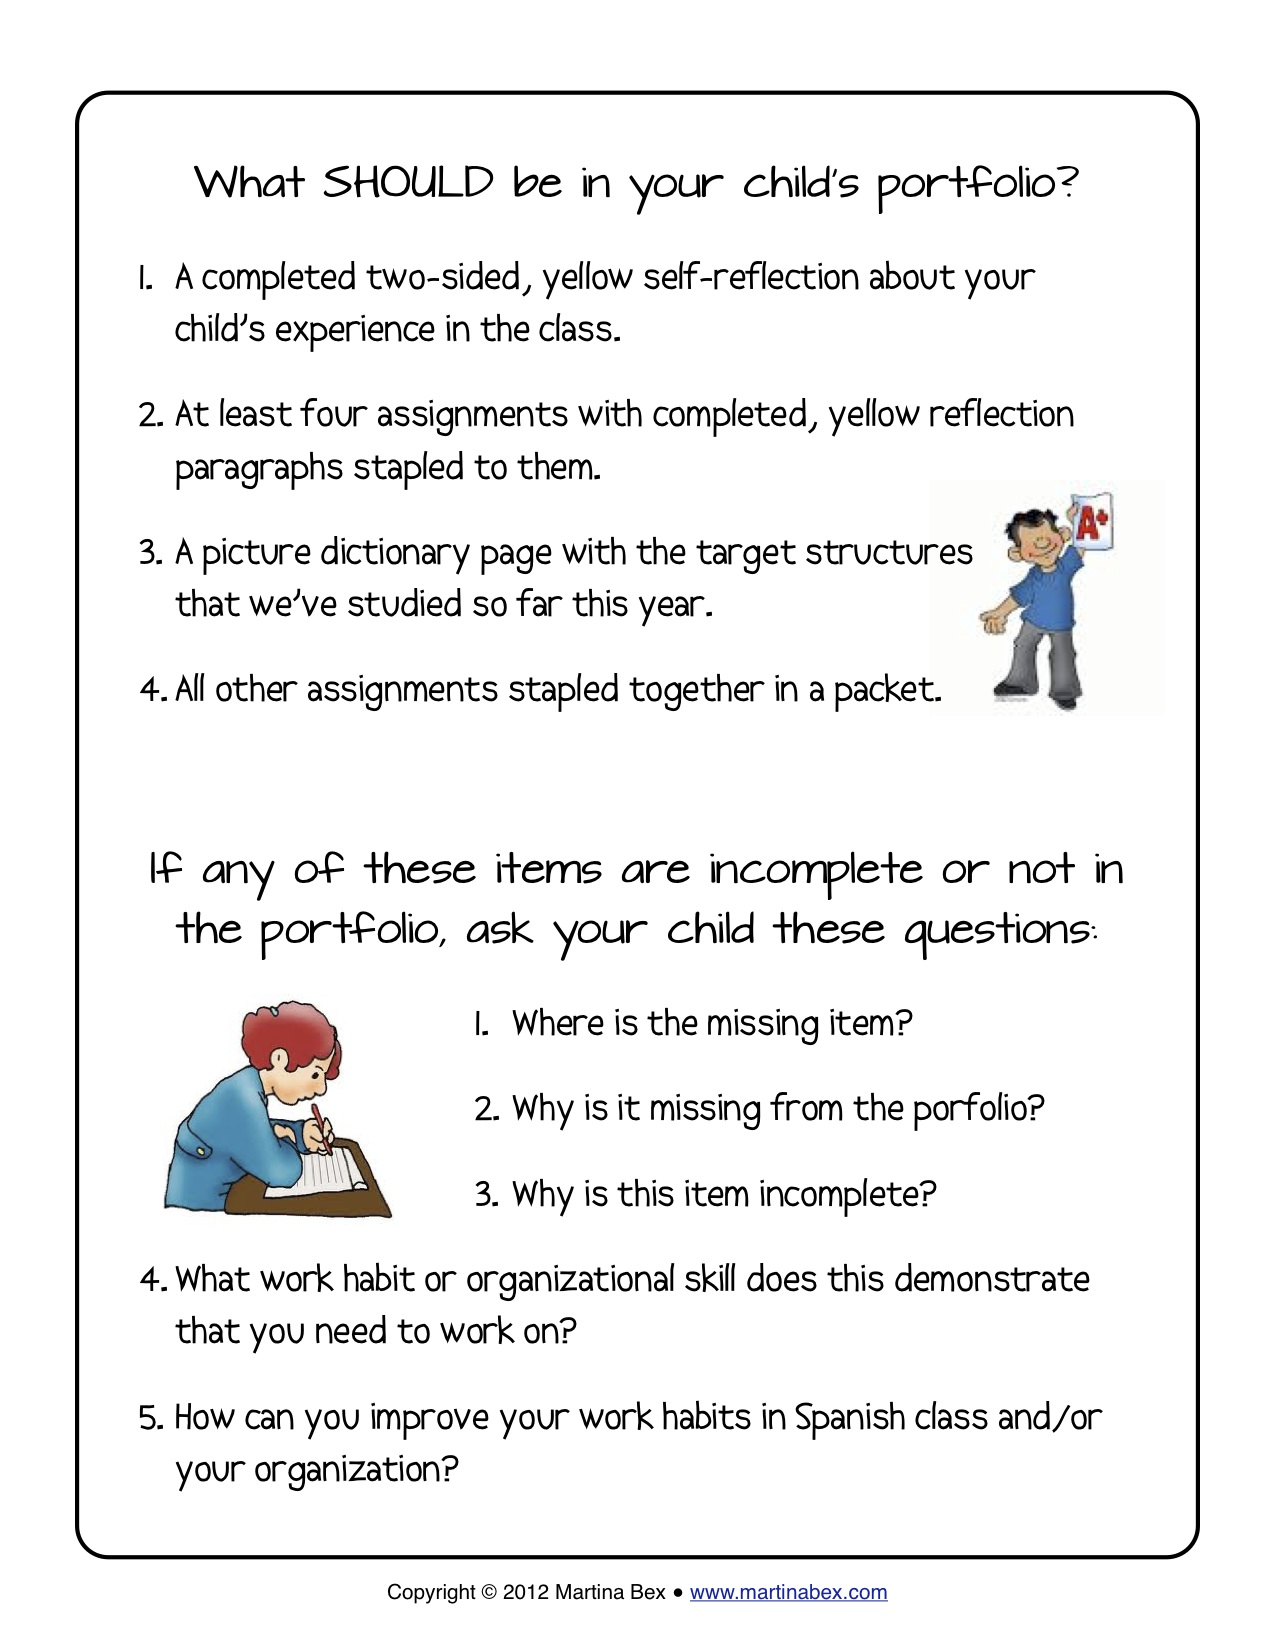 Letter To Teacher From Parent About Child S Work Habits